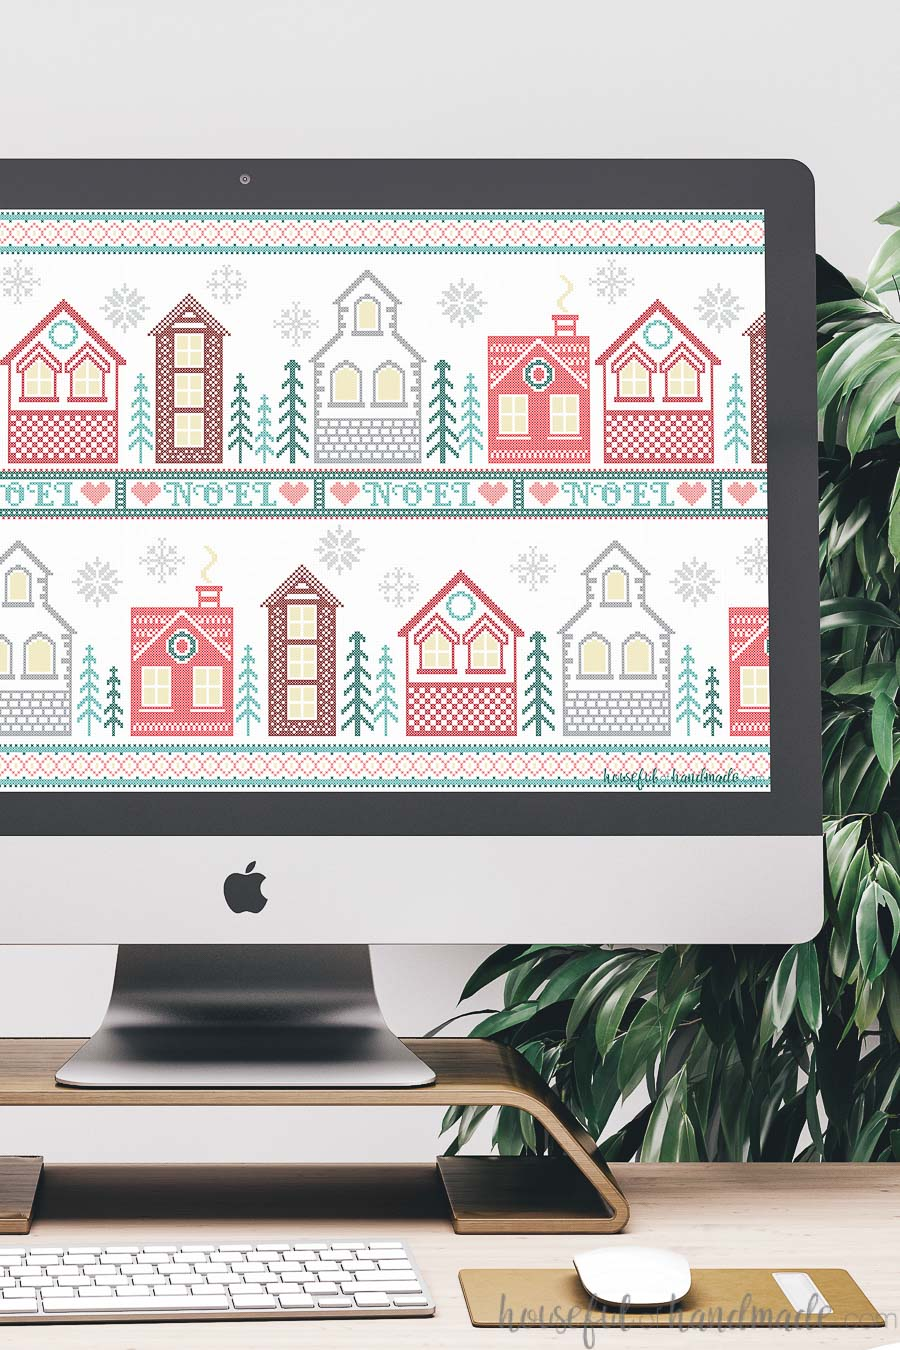 iMac computer with a cross-stitch Christmas village digital wallpaper on the screen.